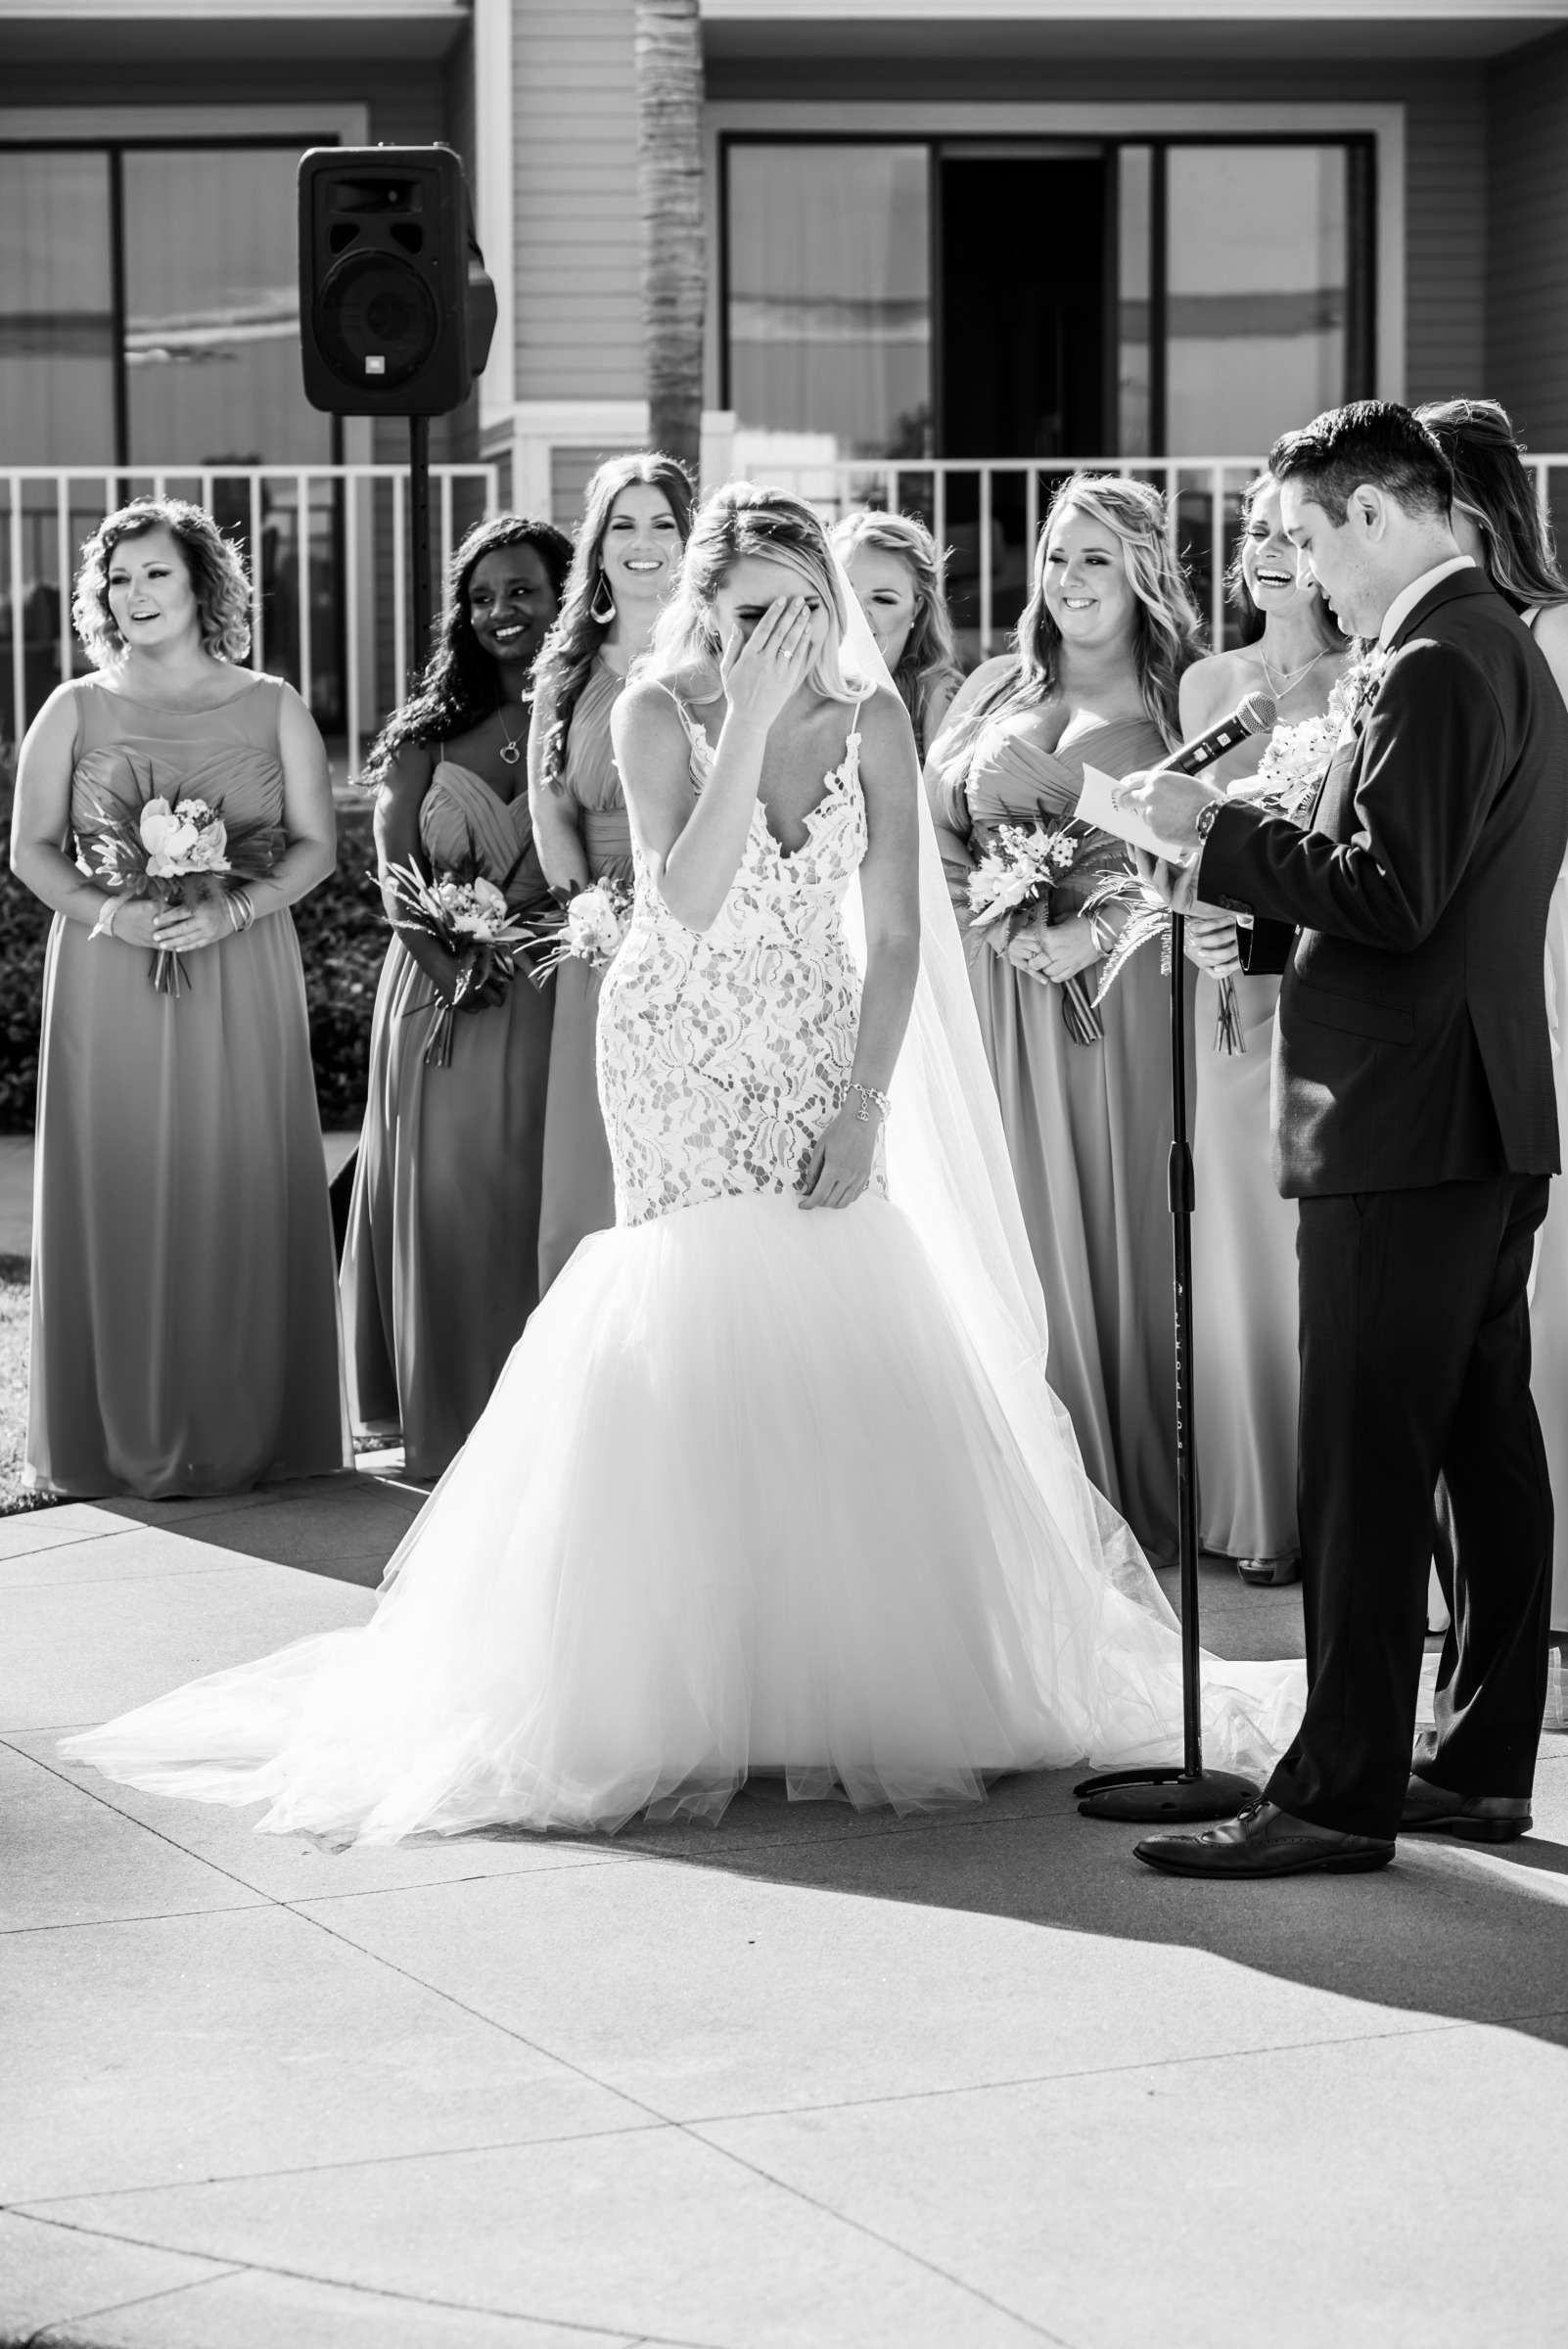 Coronado Island Marriott Resort & Spa Wedding coordinated by Bluestocking Weddings & Events, Ashleigh and Christopher Wedding Photo #64 by True Photography